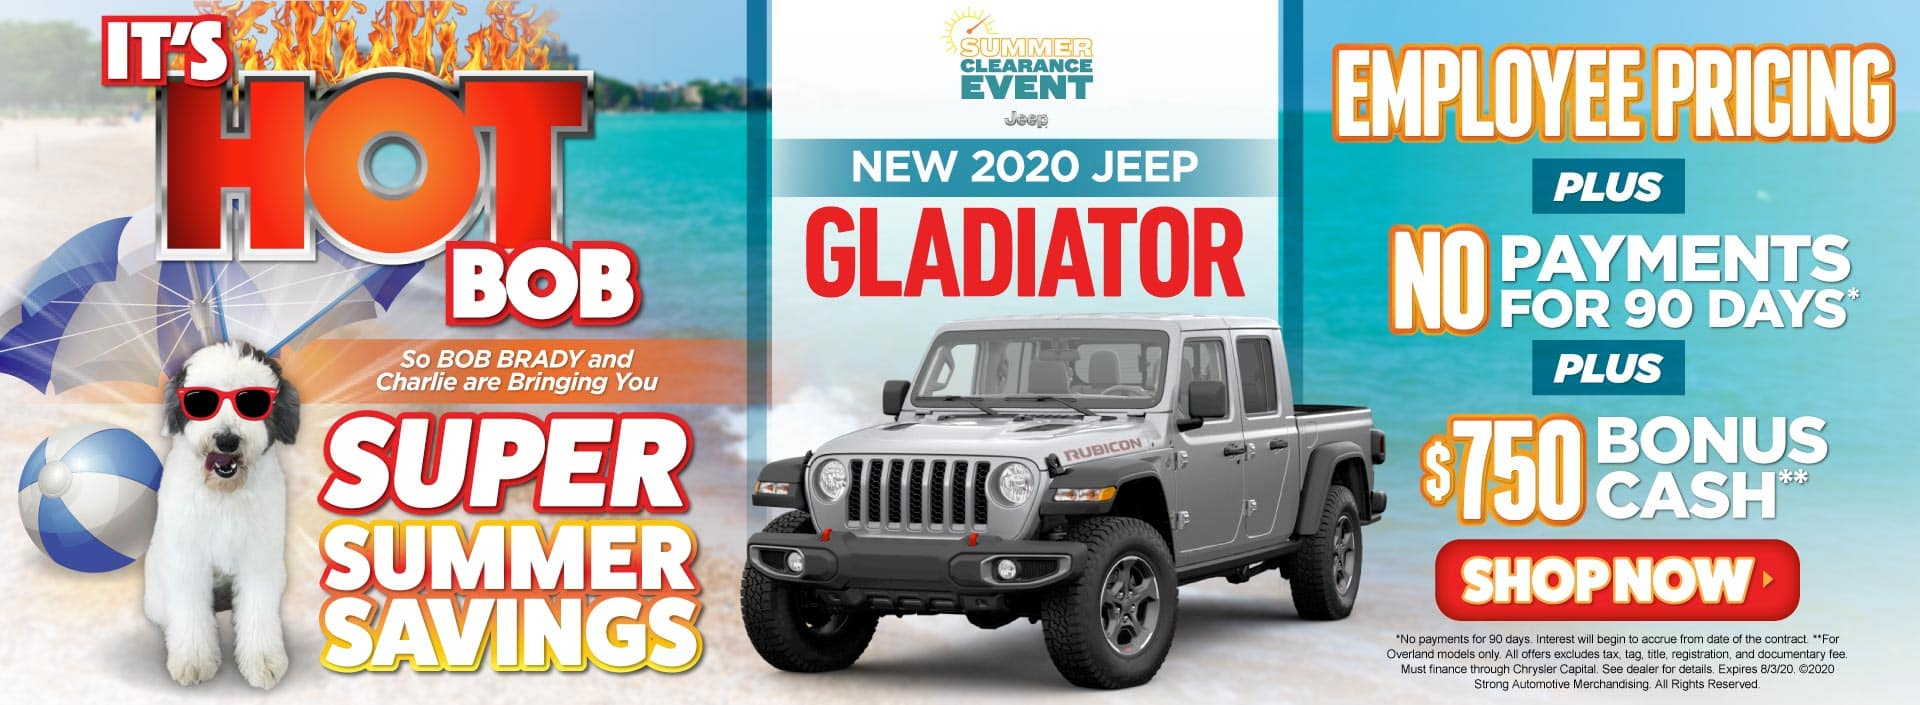 New 2020 Jeep Gladiator Employee Pricing plus No Payments - ACT NOW